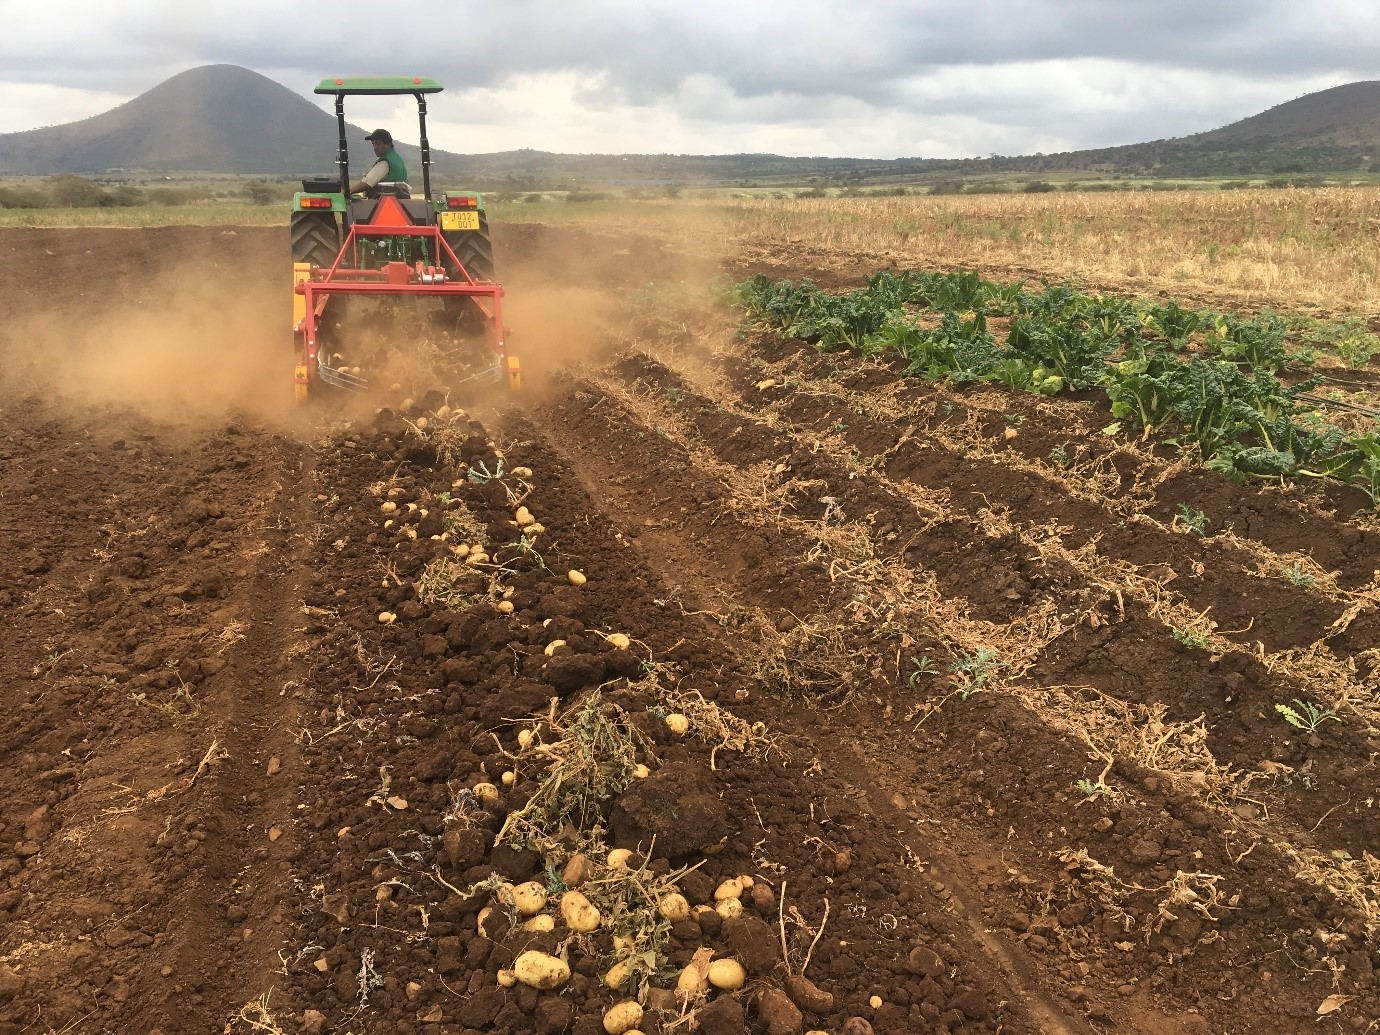 LonAgro Tanzania Rovic Potato Harvester Excels at Onion Harvesting